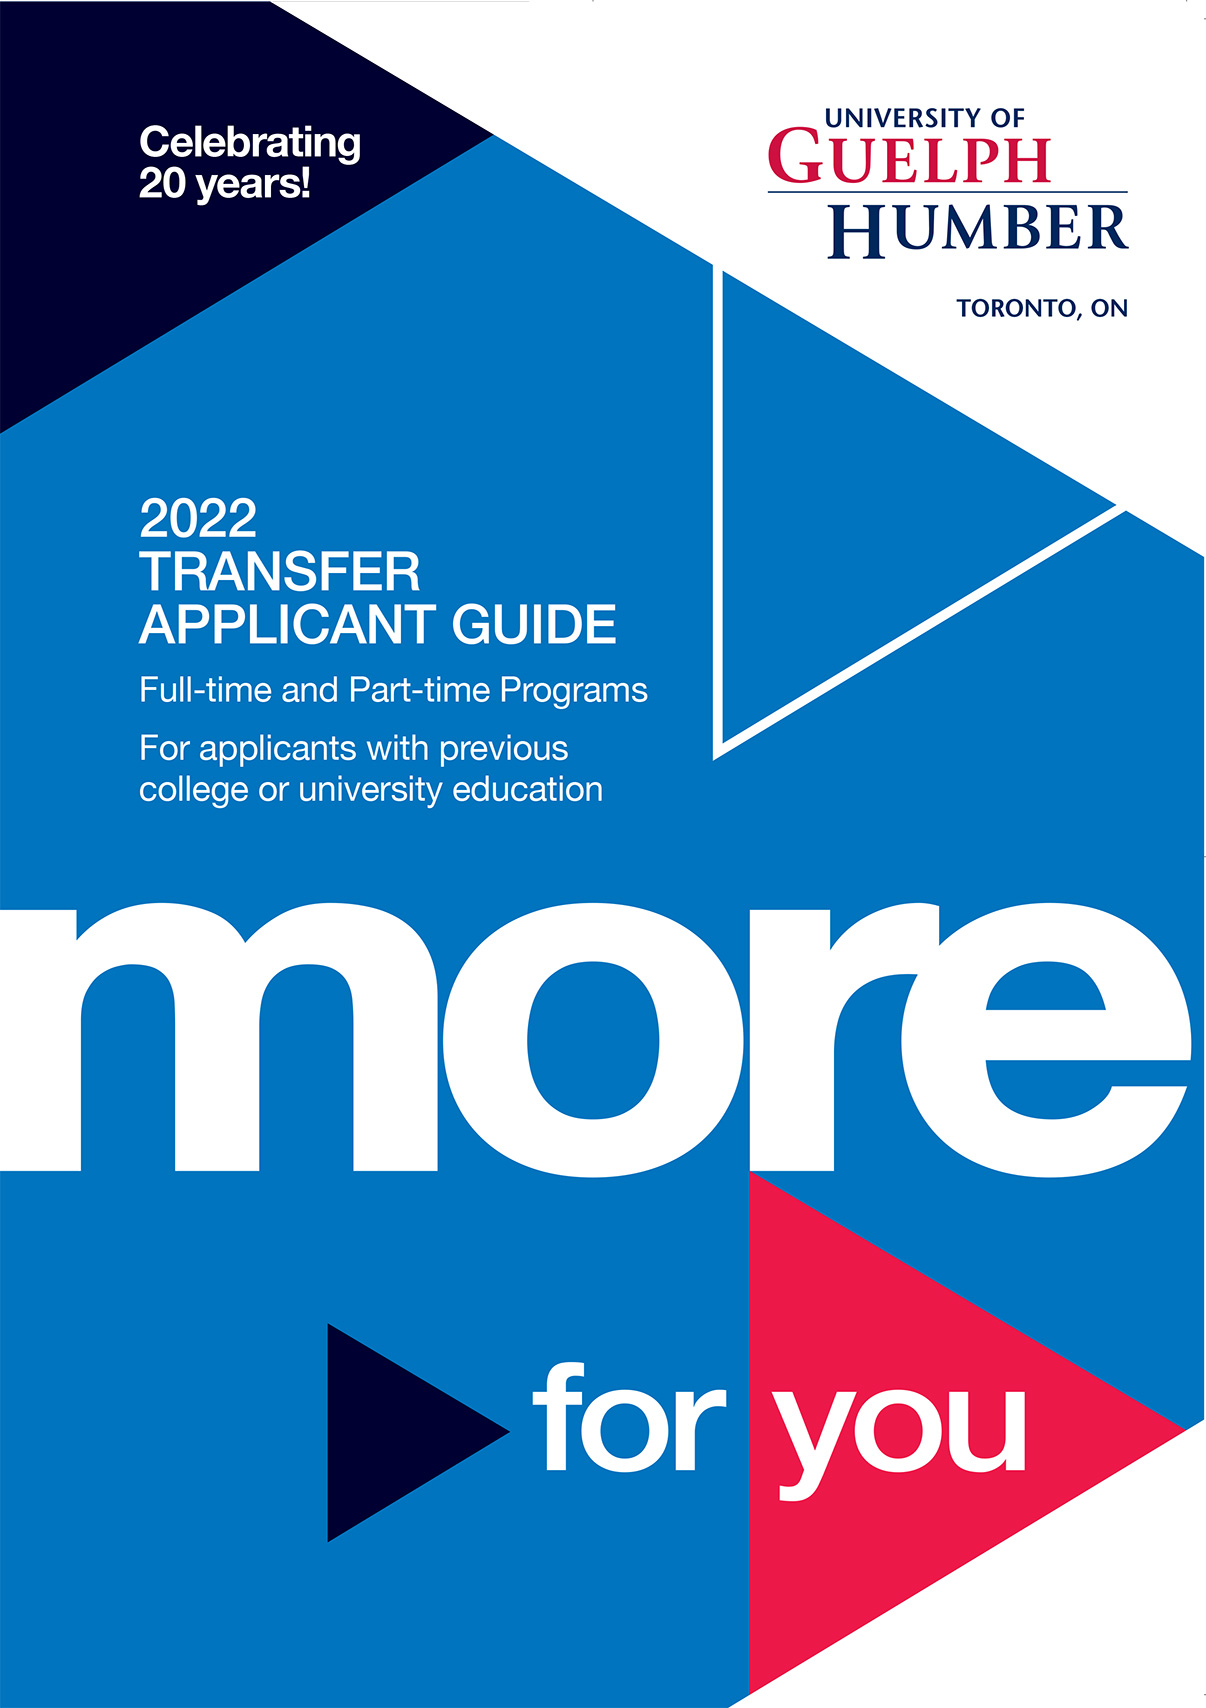 Cover image of Transfer Applicant Guide 2022.